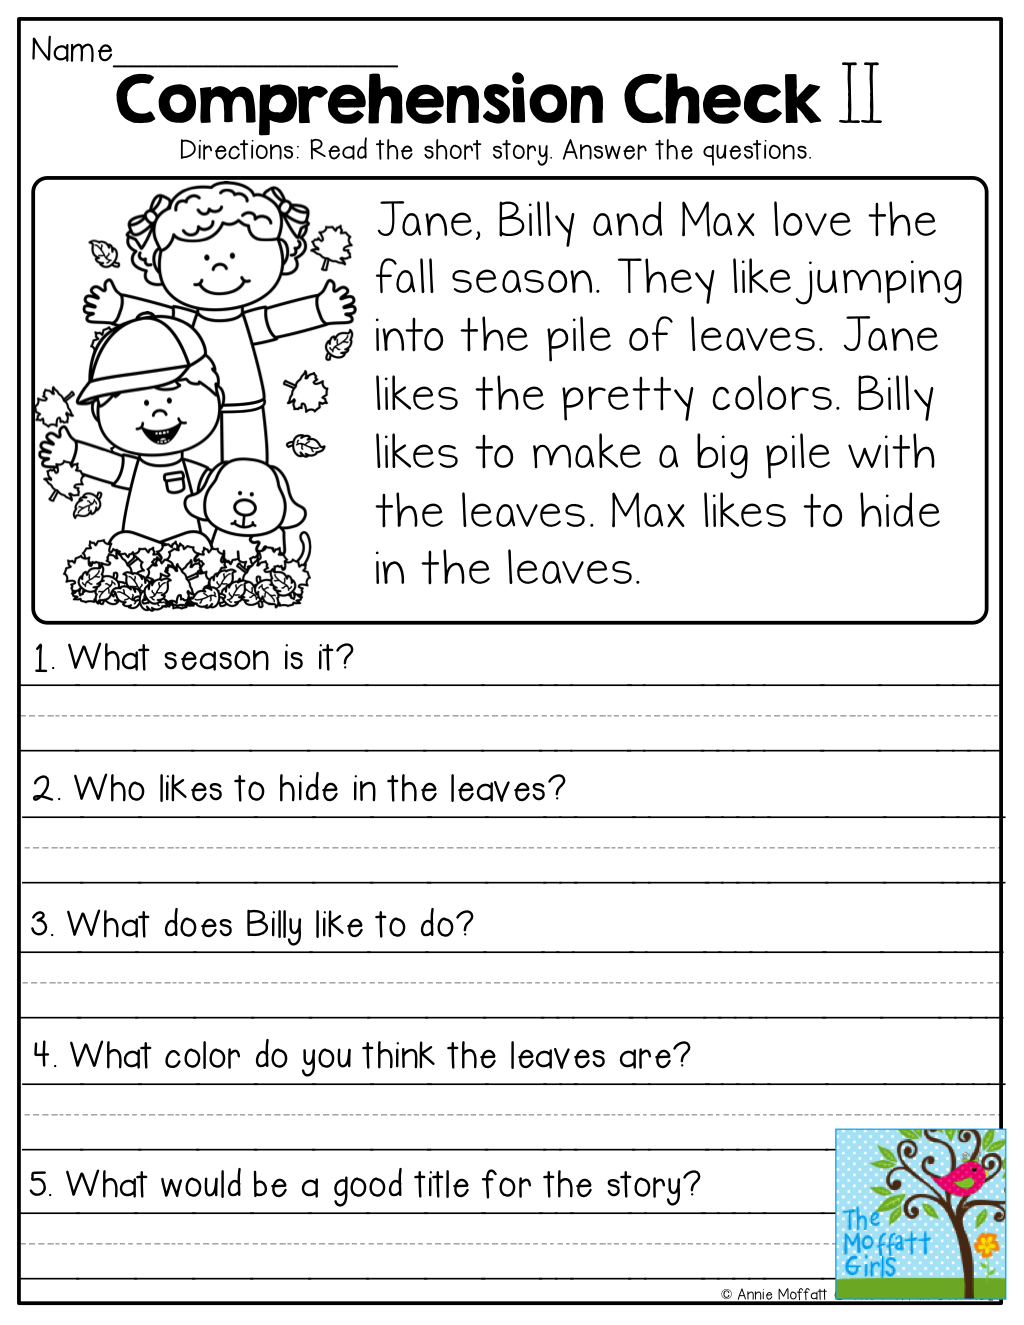 Comprehension Checks And So Many More Useful Printables! | Test Of - Free Printable Comprehension Worksheets For Grade 5